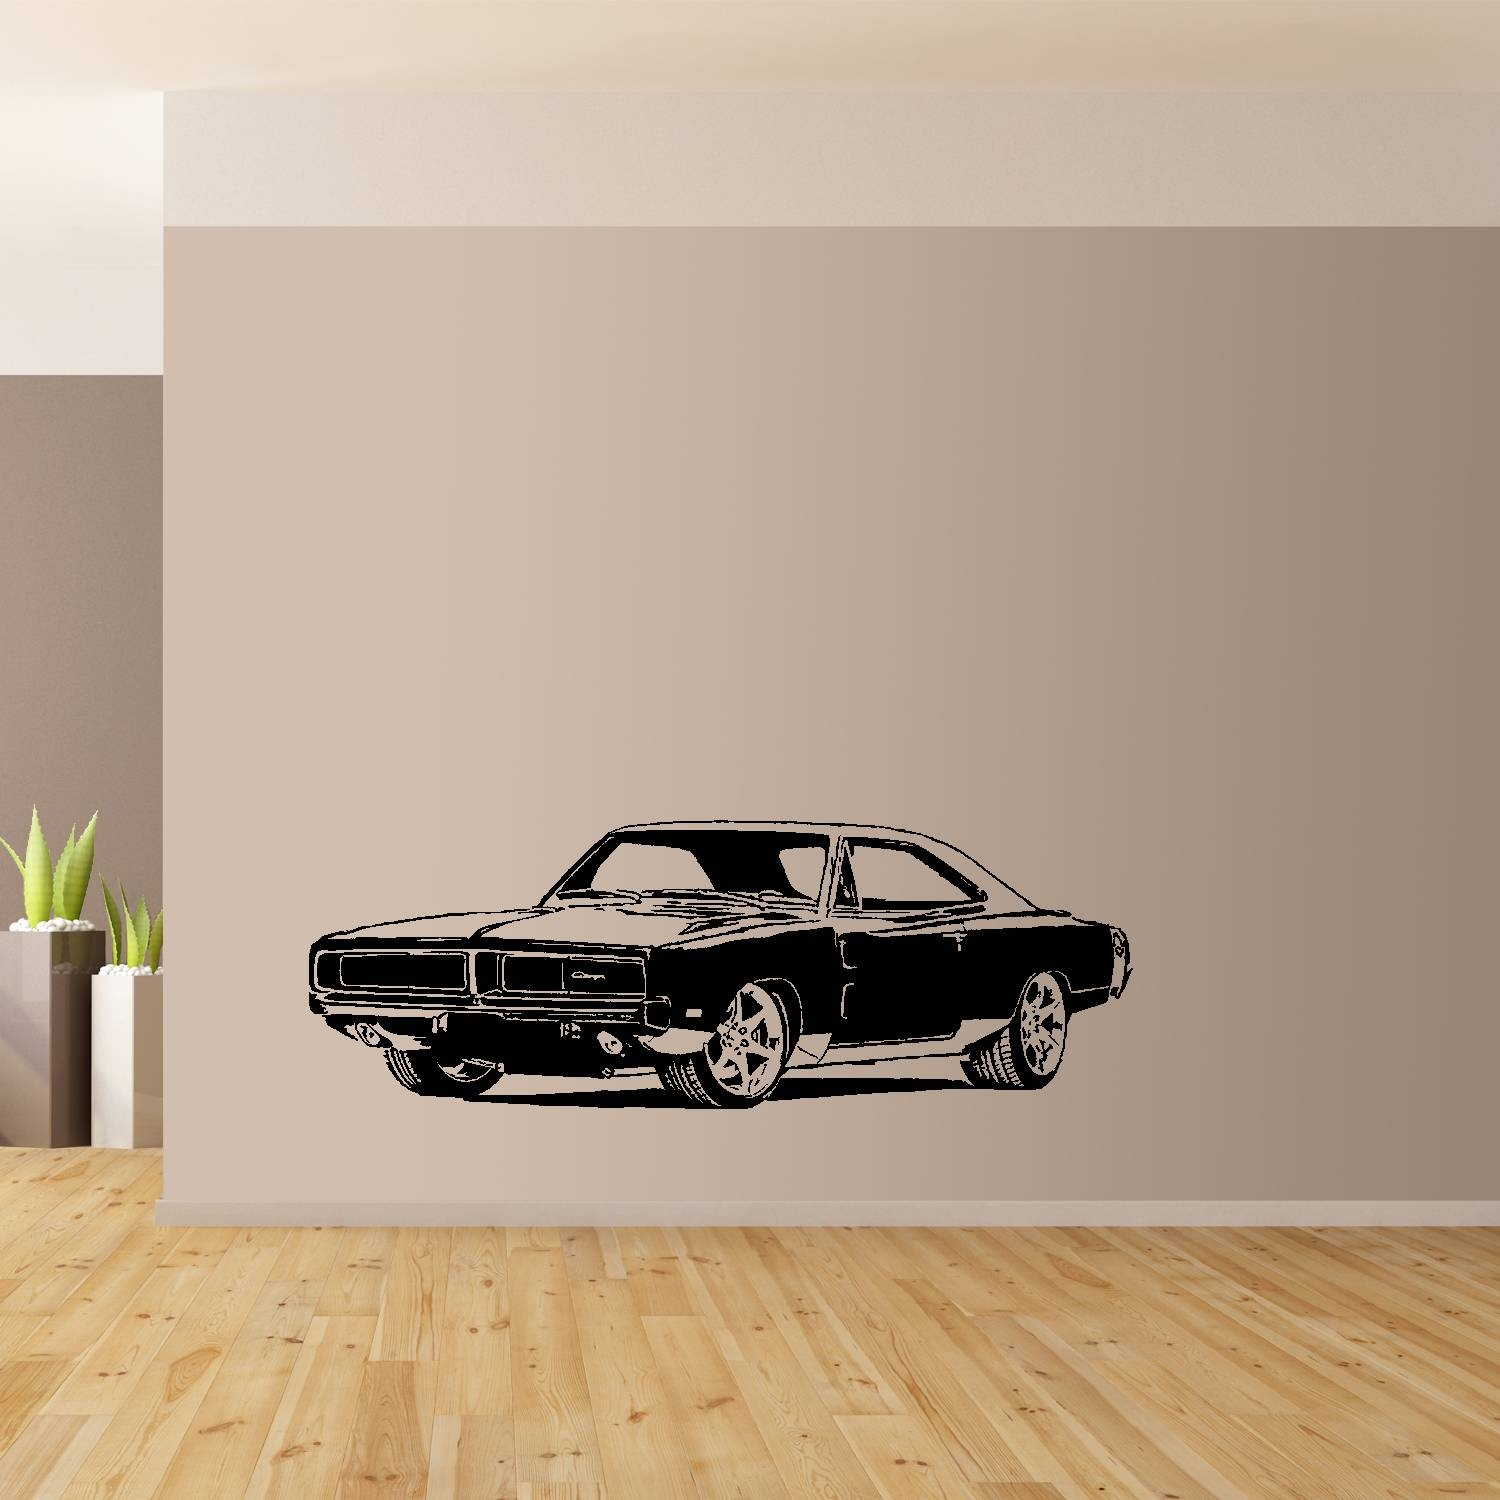 1969 Dodge Charger, Classic American Muscle Car Wall Art, Giant In Best And Newest Classic Car Wall Art (View 2 of 25)